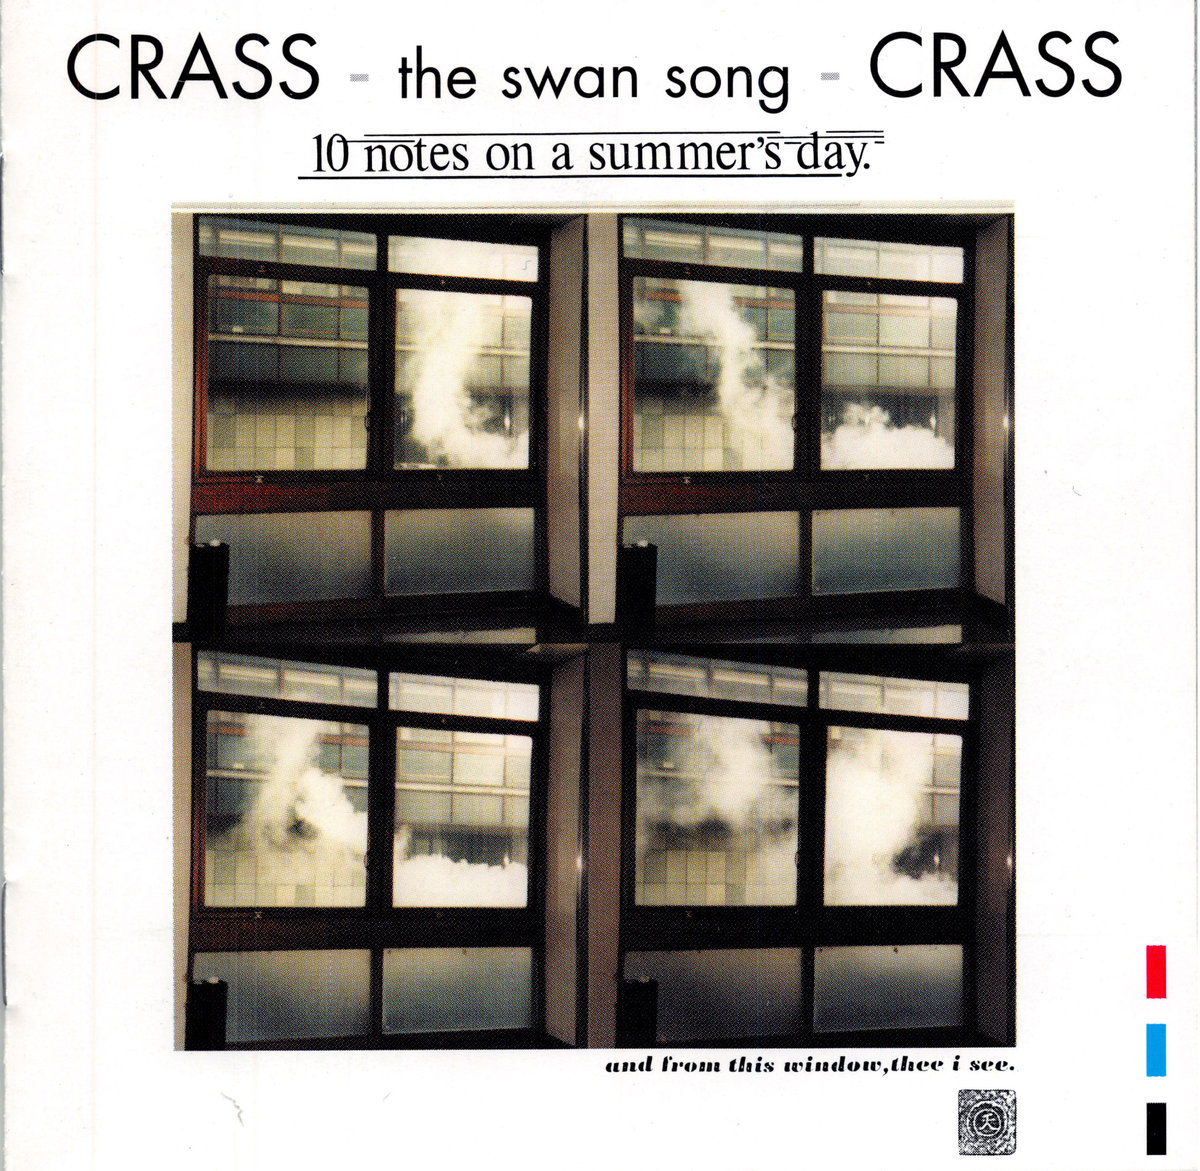 Ten Notes On A Summer's Day - Crass